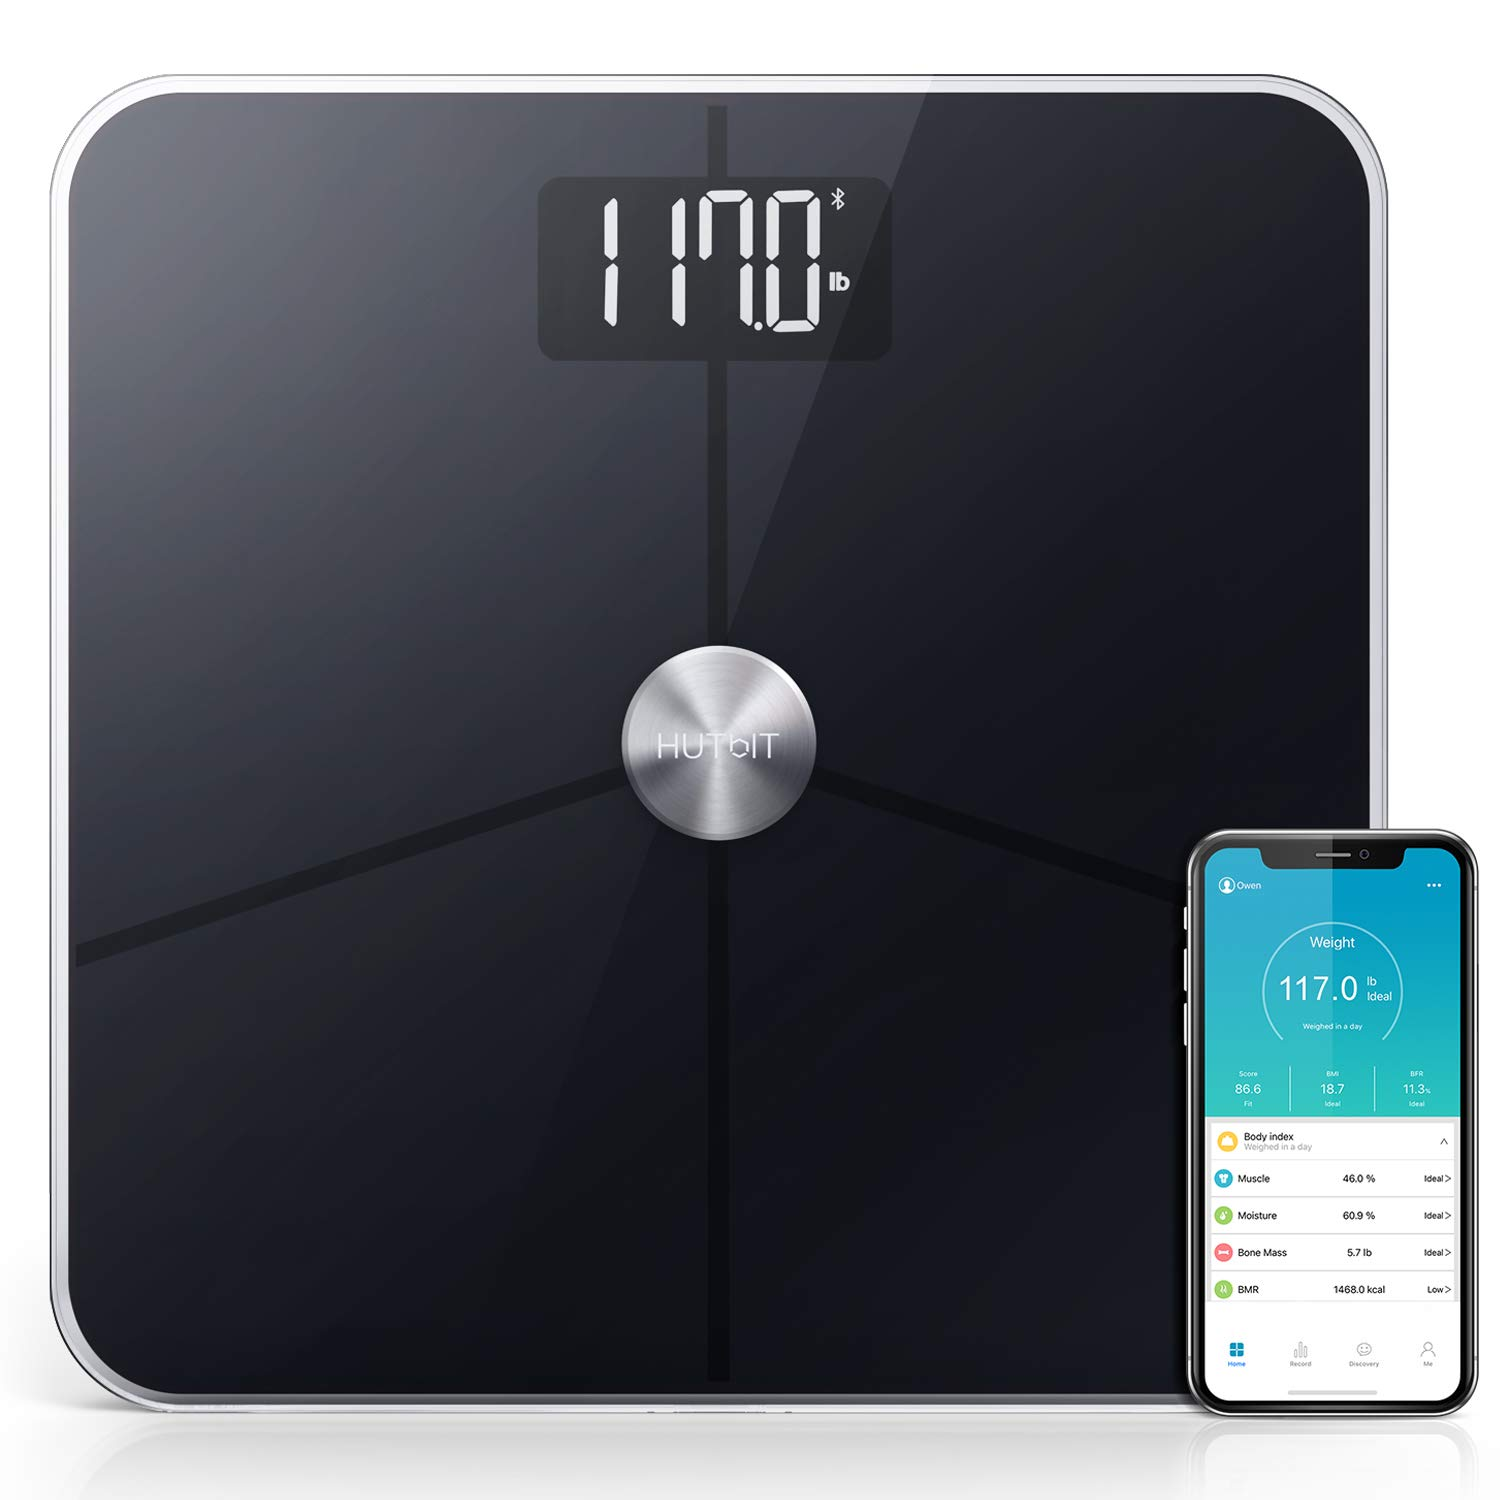 Body Fat Scale,HUTbIT BMI Scale Digital Bathroom Weight Scale Body Composition Analyzer 18 Accurate Measurements Advanced ITO Coating Technology alloyseed